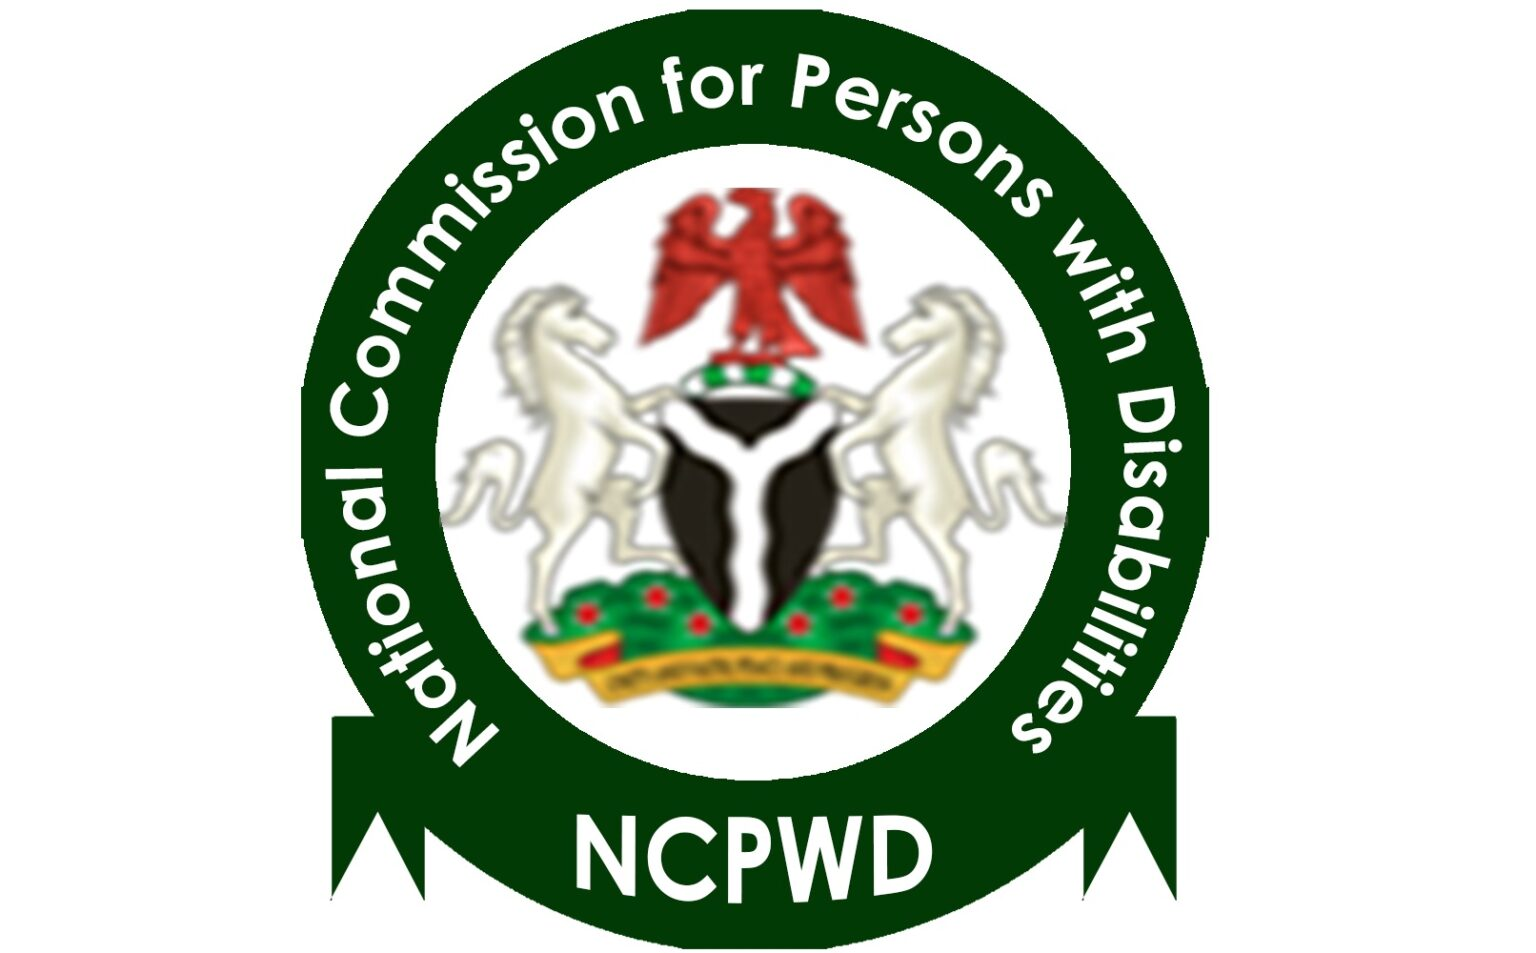 Good news for persons with disabilities | Dailytrust